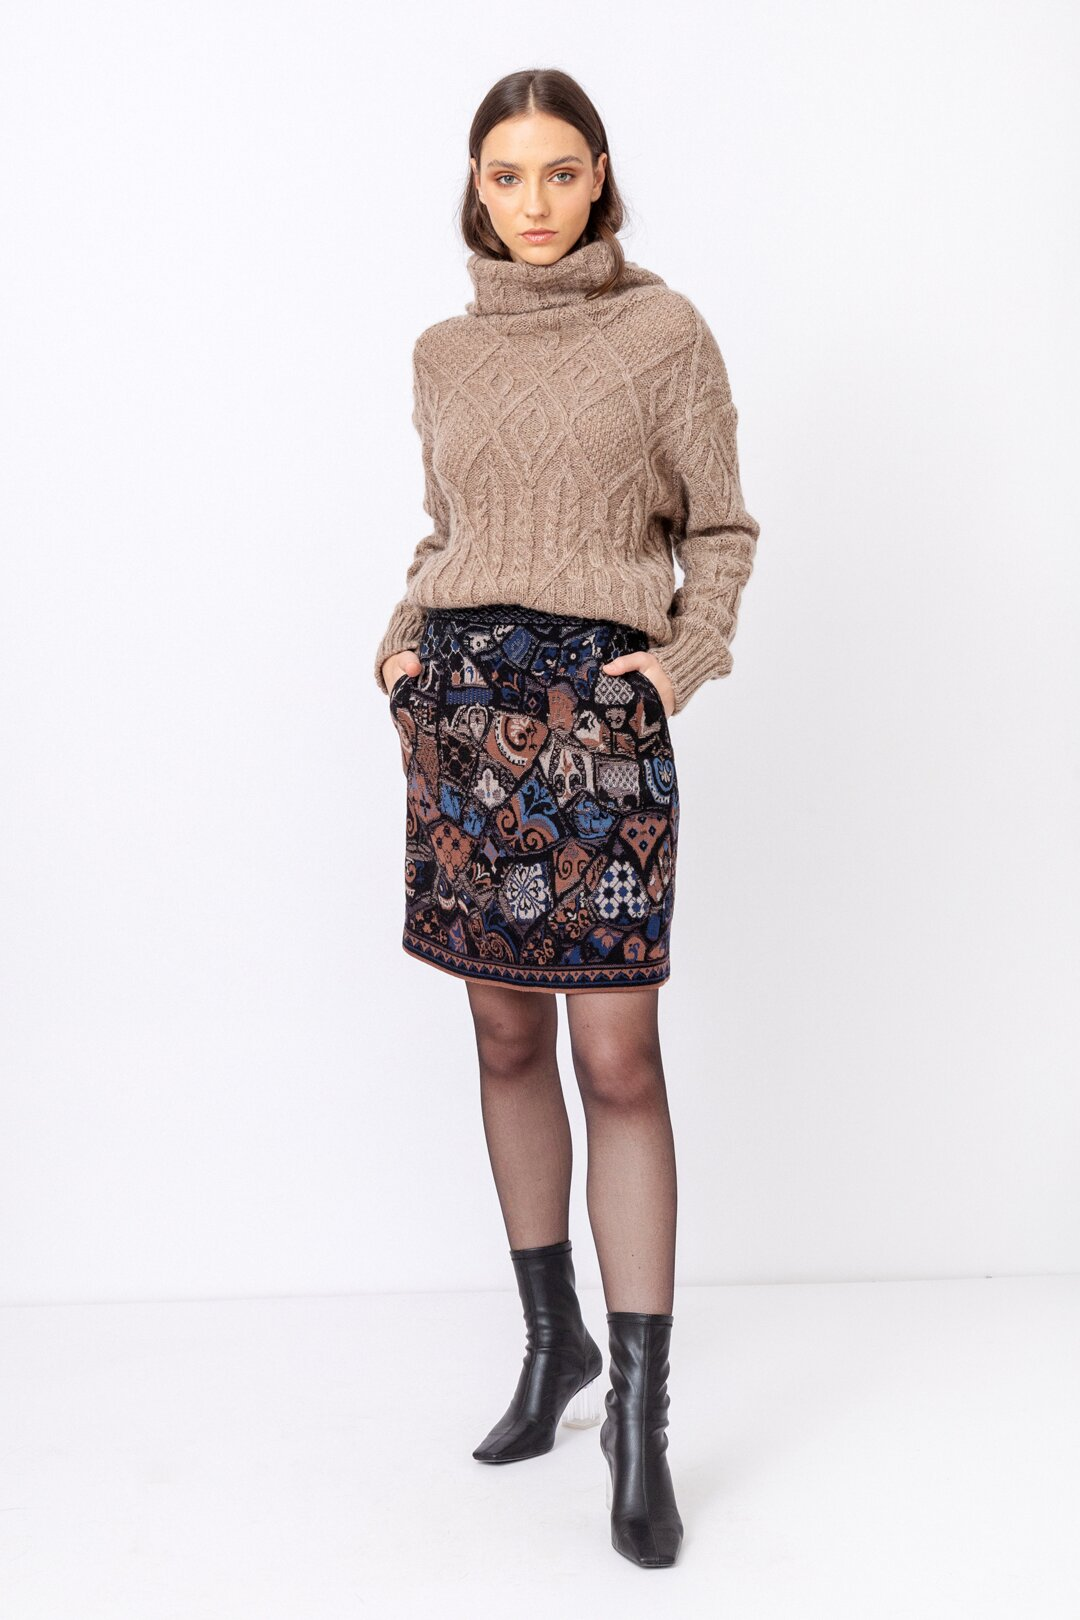 outfit-7c8a1128